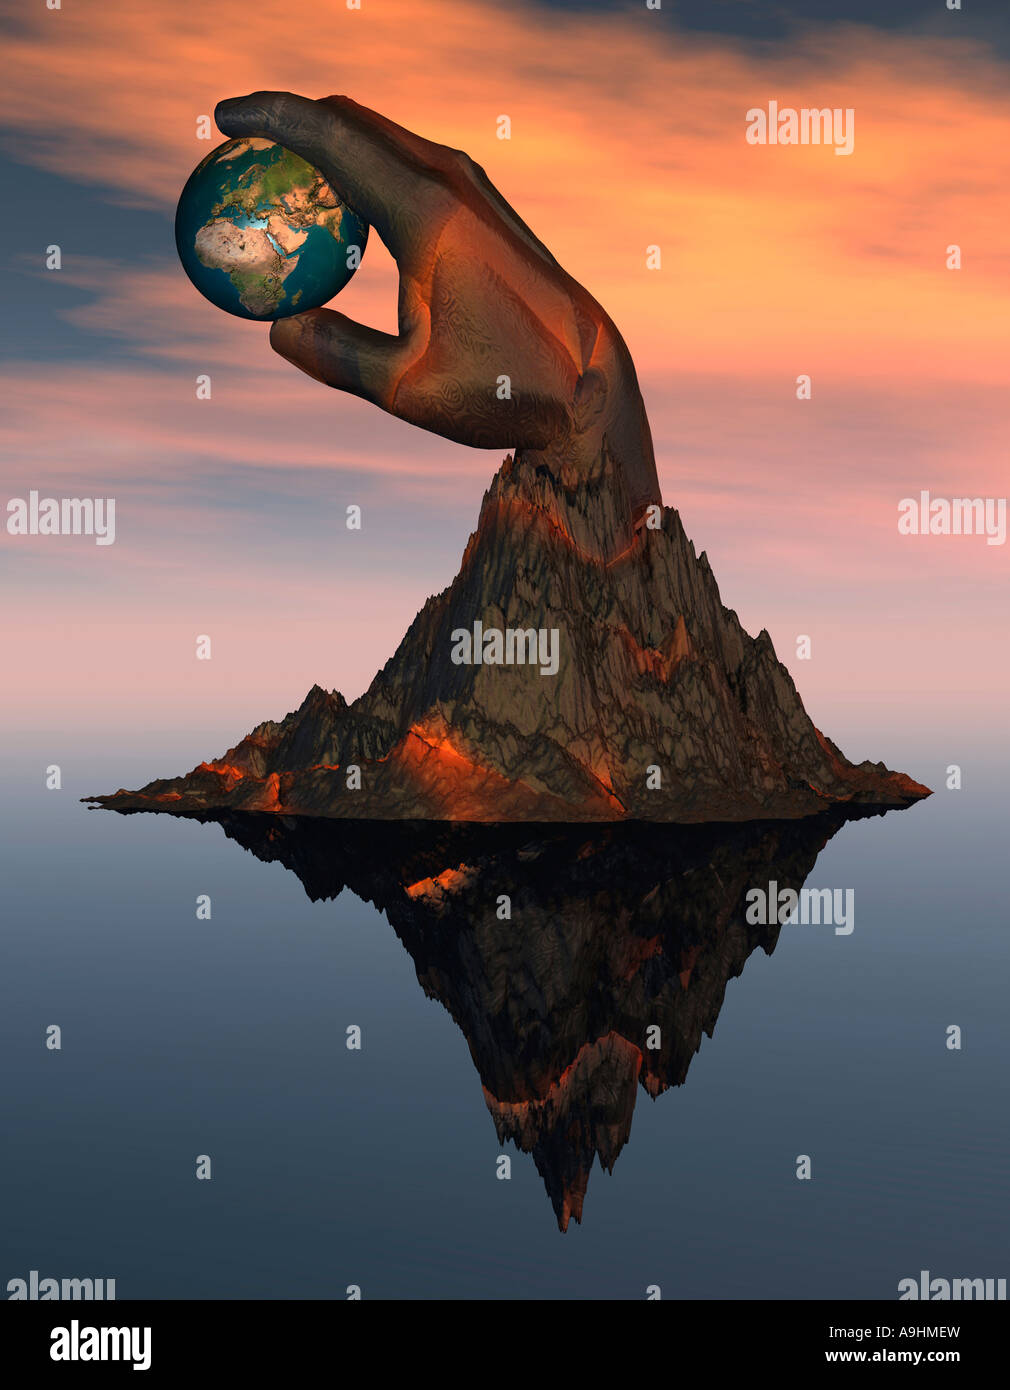 World At Your Finger Tips - Stock Image